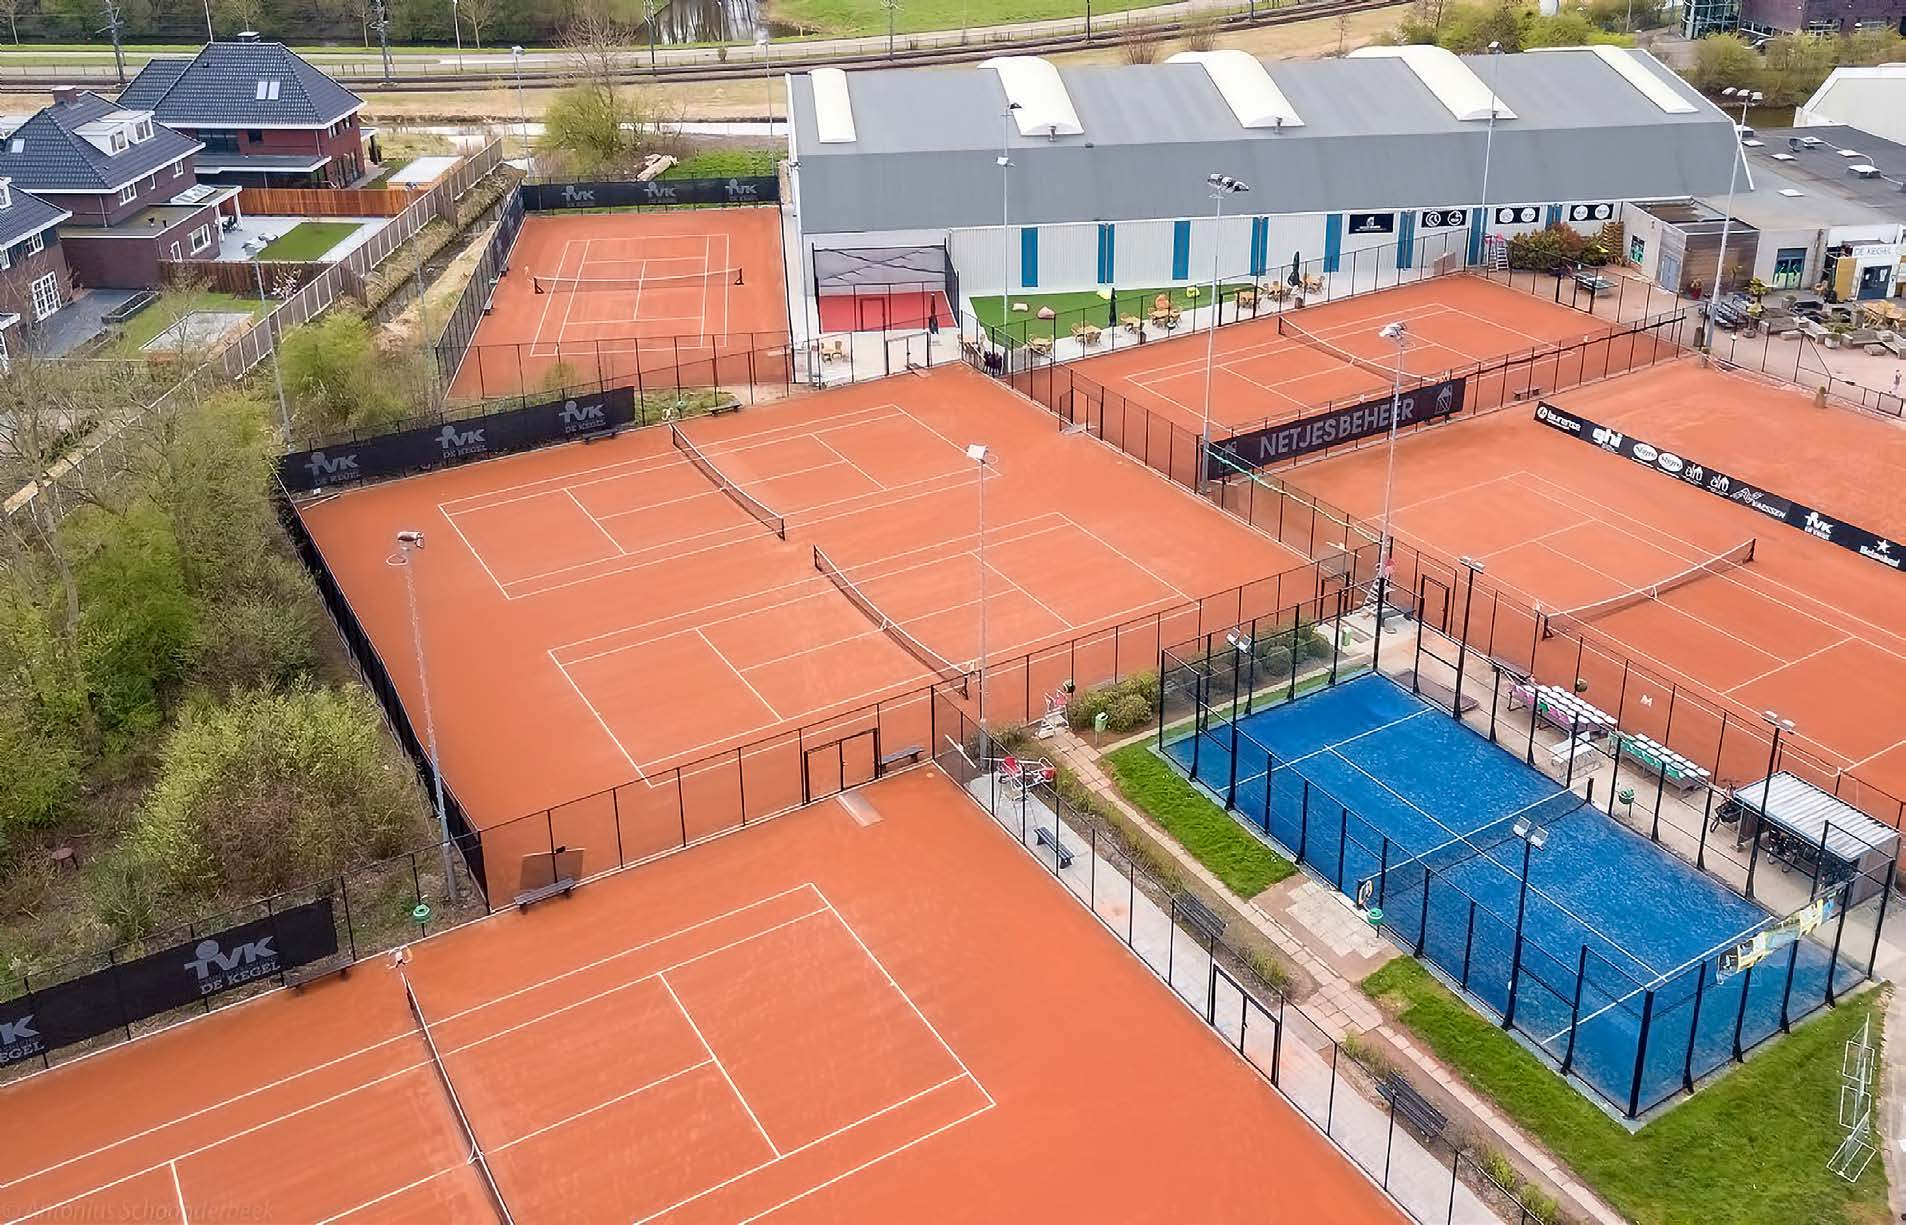 Nationaal Tenniscentrum, Amstelveen